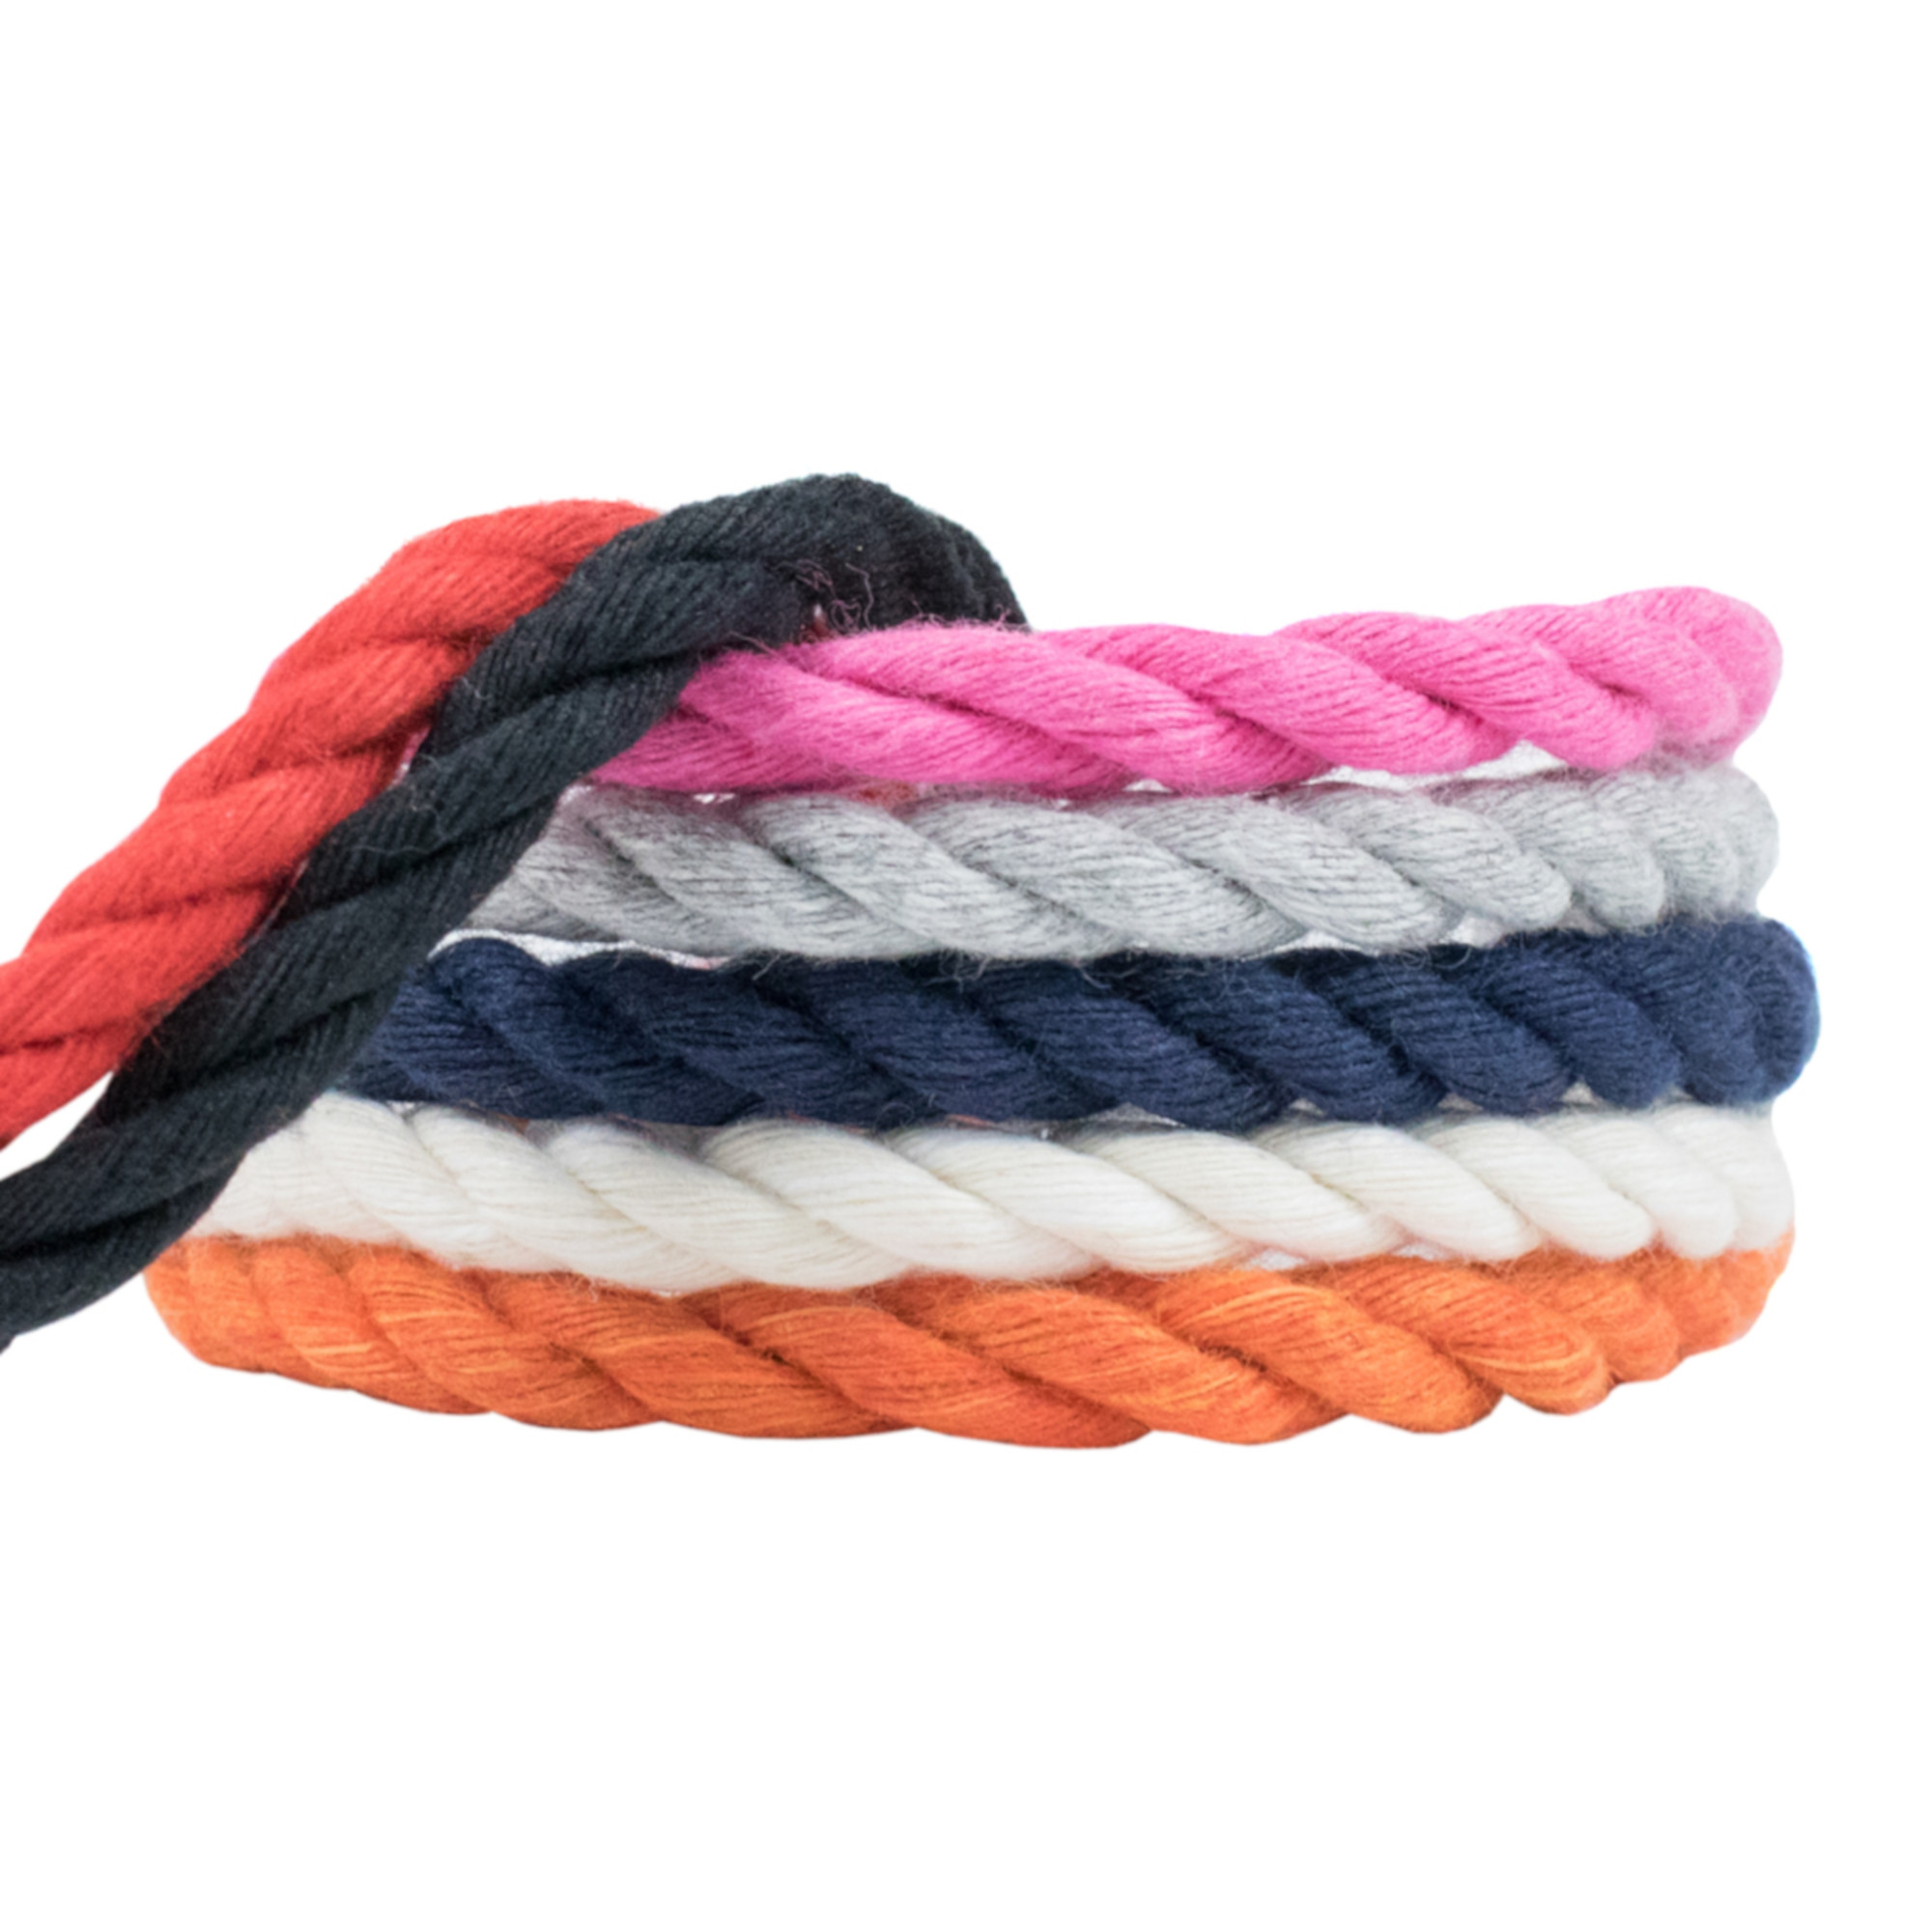 WCP Cotton Rope Soft Triple Strand 1/4 Inch Natural Artisan Cord in Various Colors and Sizes